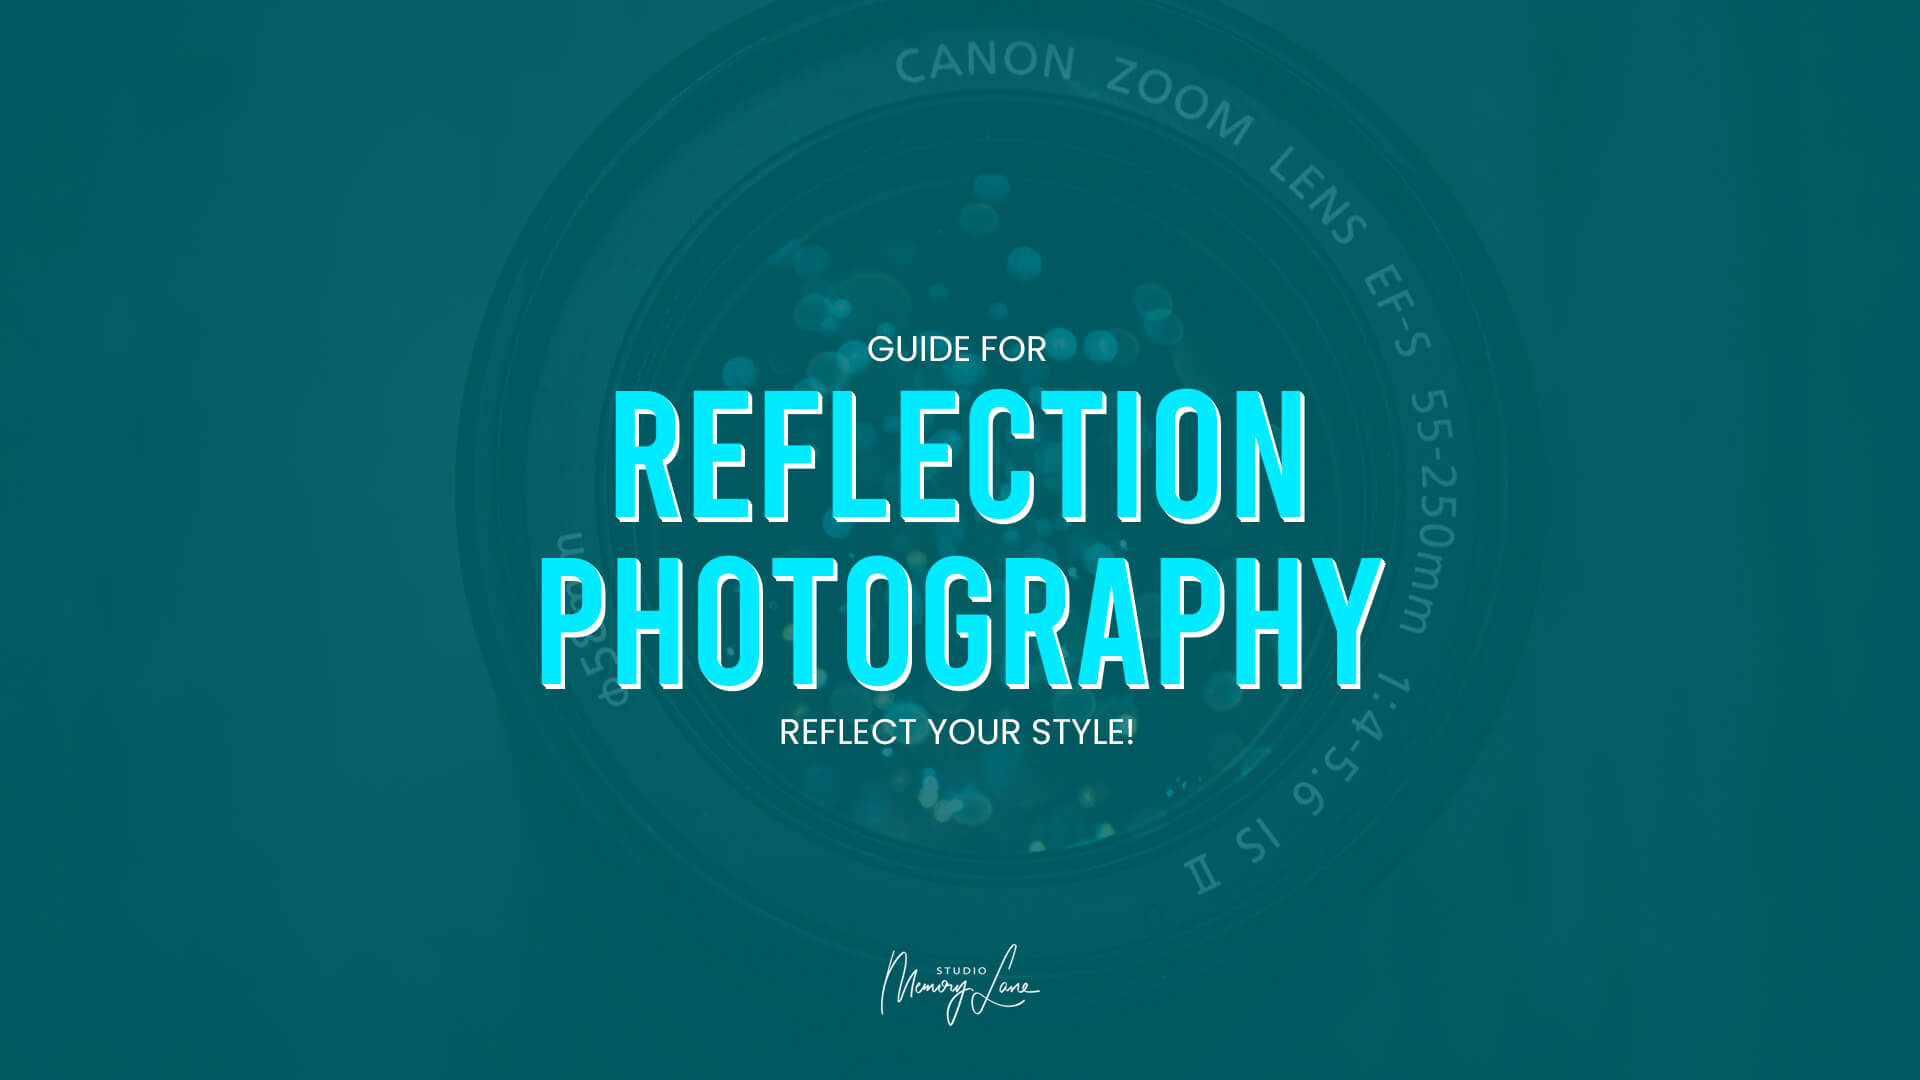 Guide for reflection photography